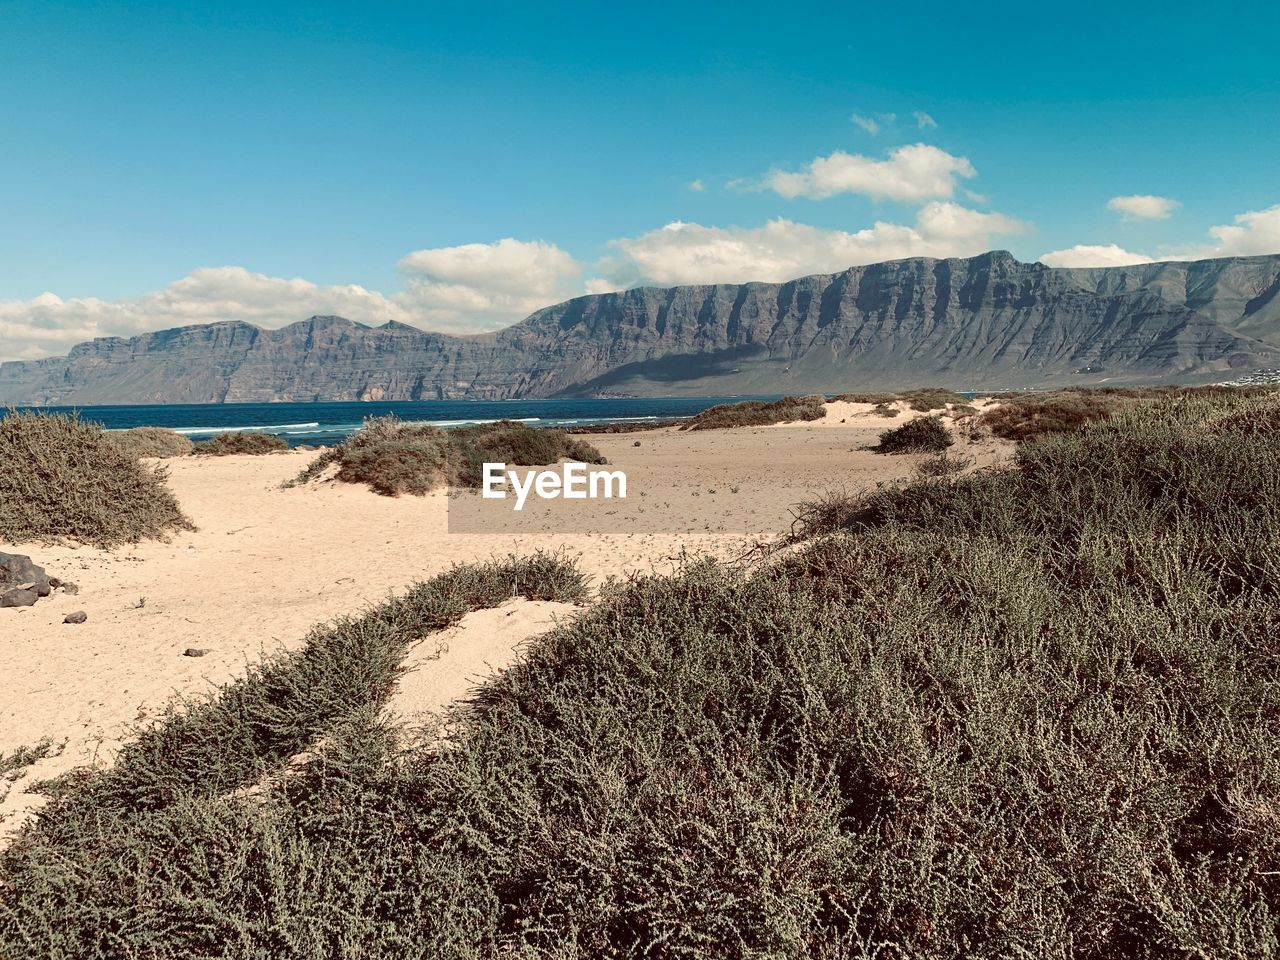 sky, scenics - nature, beauty in nature, tranquility, land, tranquil scene, plant, mountain, day, environment, landscape, nature, non-urban scene, grass, cloud - sky, no people, sunlight, sand, mountain range, outdoors, arid climate, marram grass